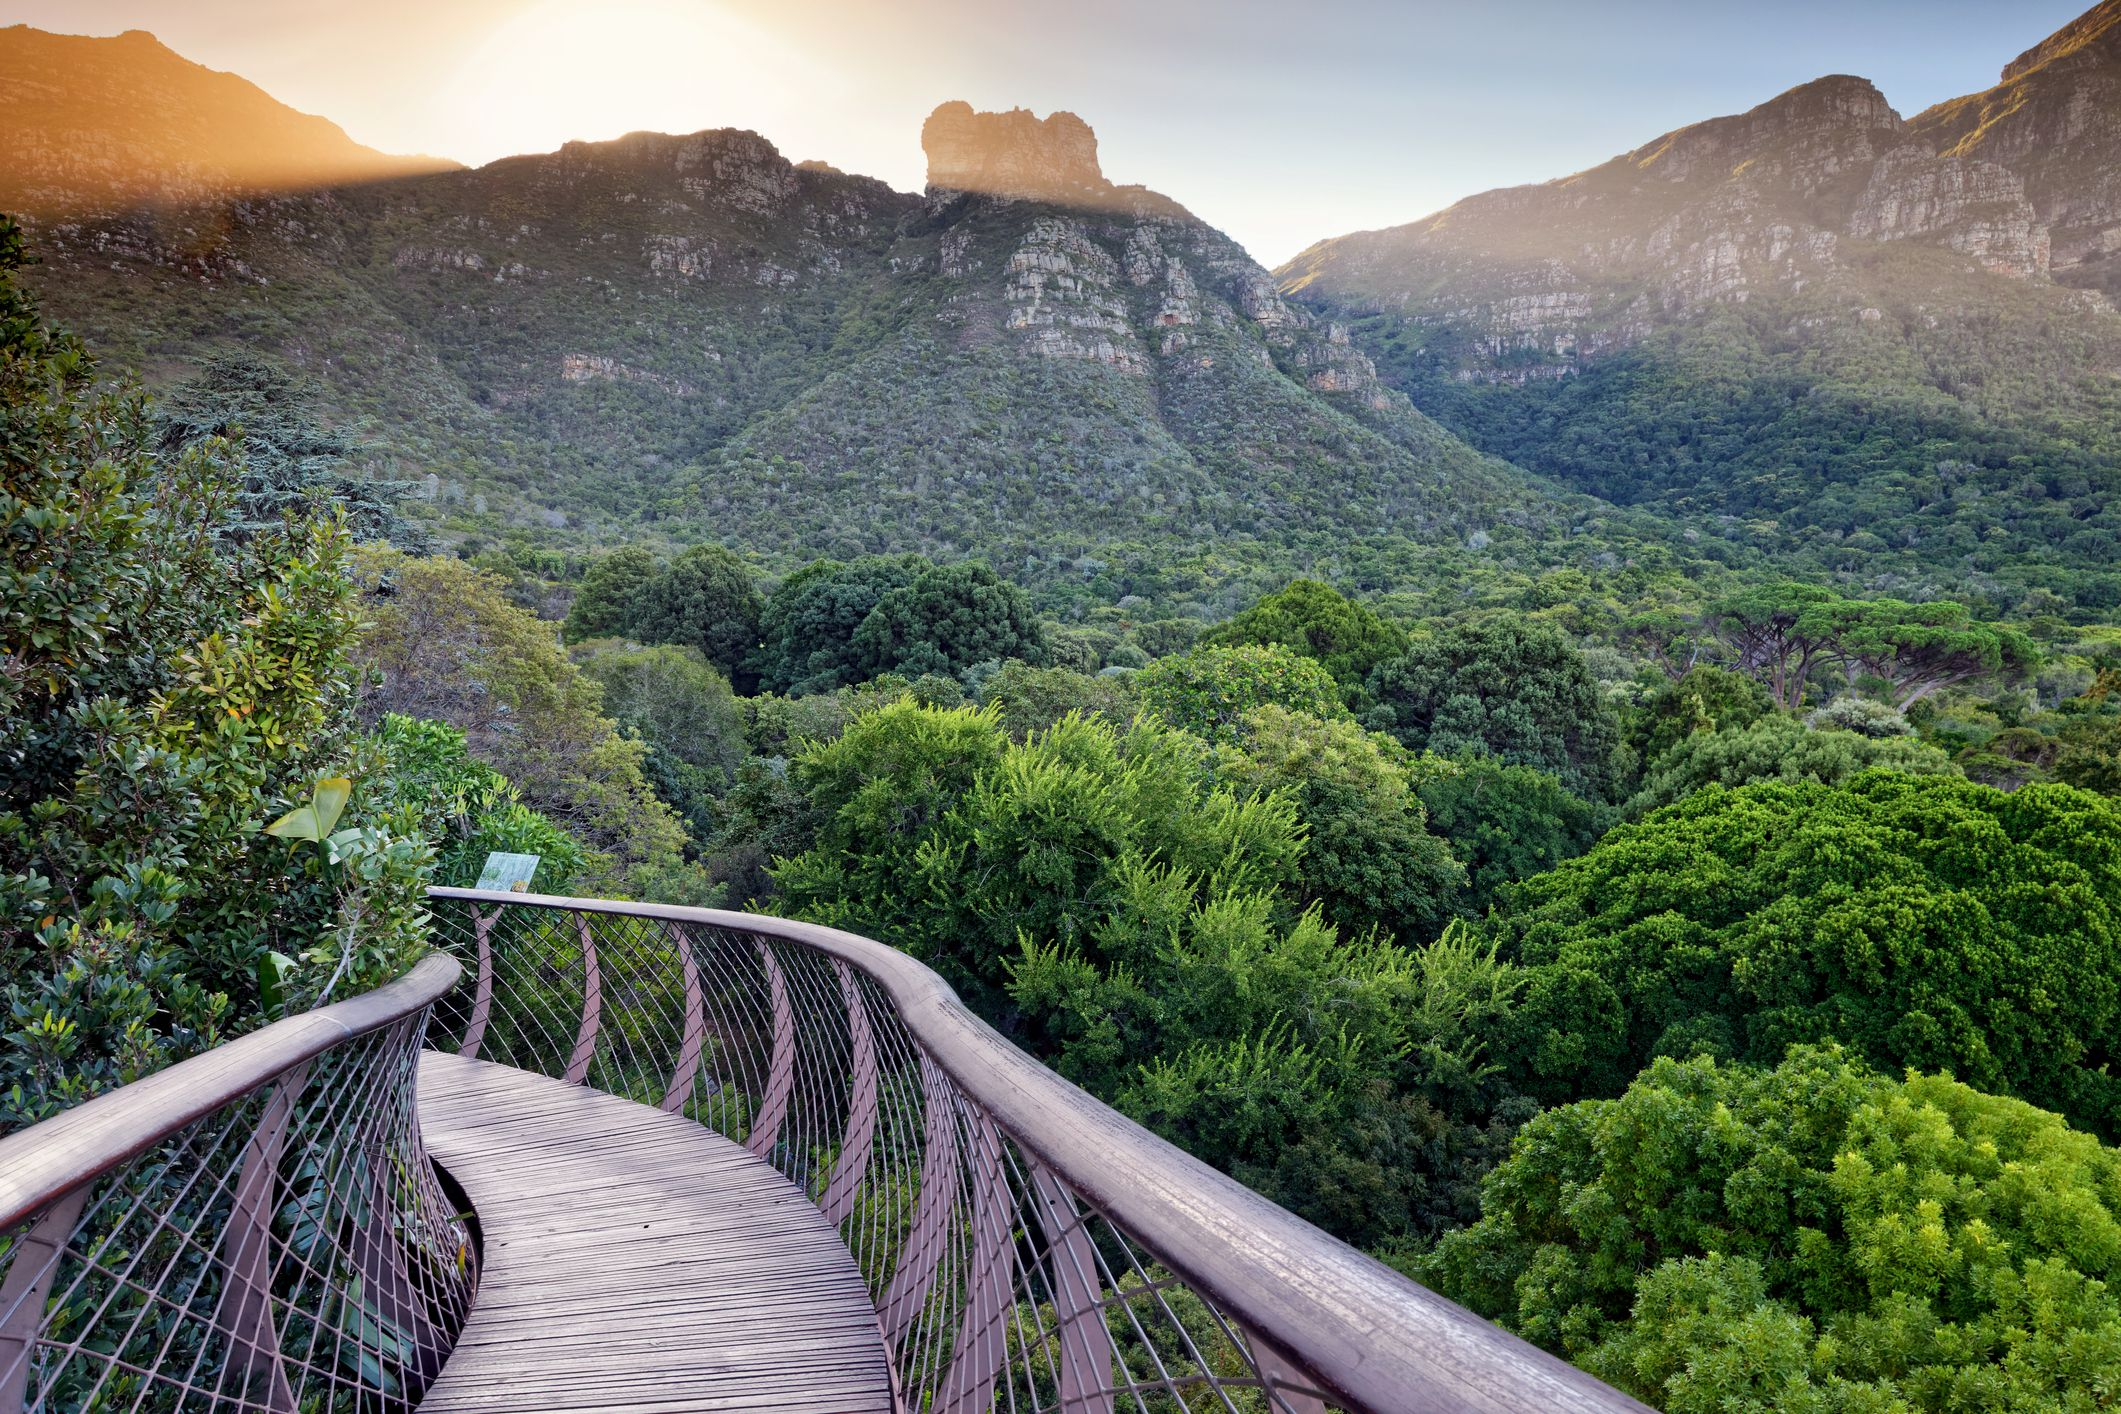 Travel Advice: Is It Safe to Travel to South Africa?